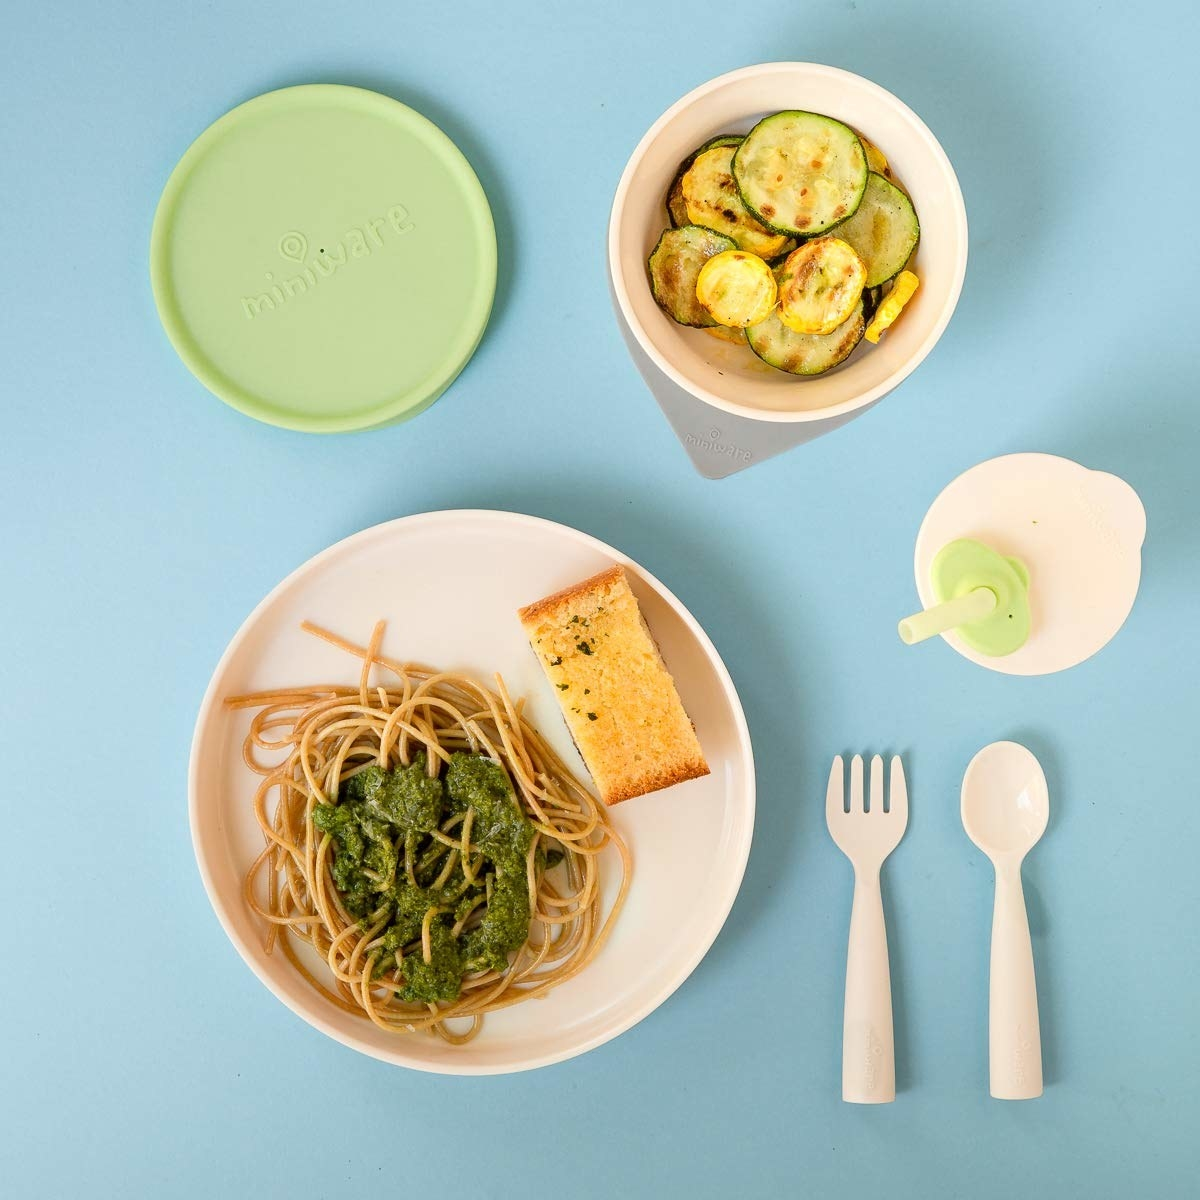 Child's dining set including two plates, a bowl, fork, spoon, and bottle with straw